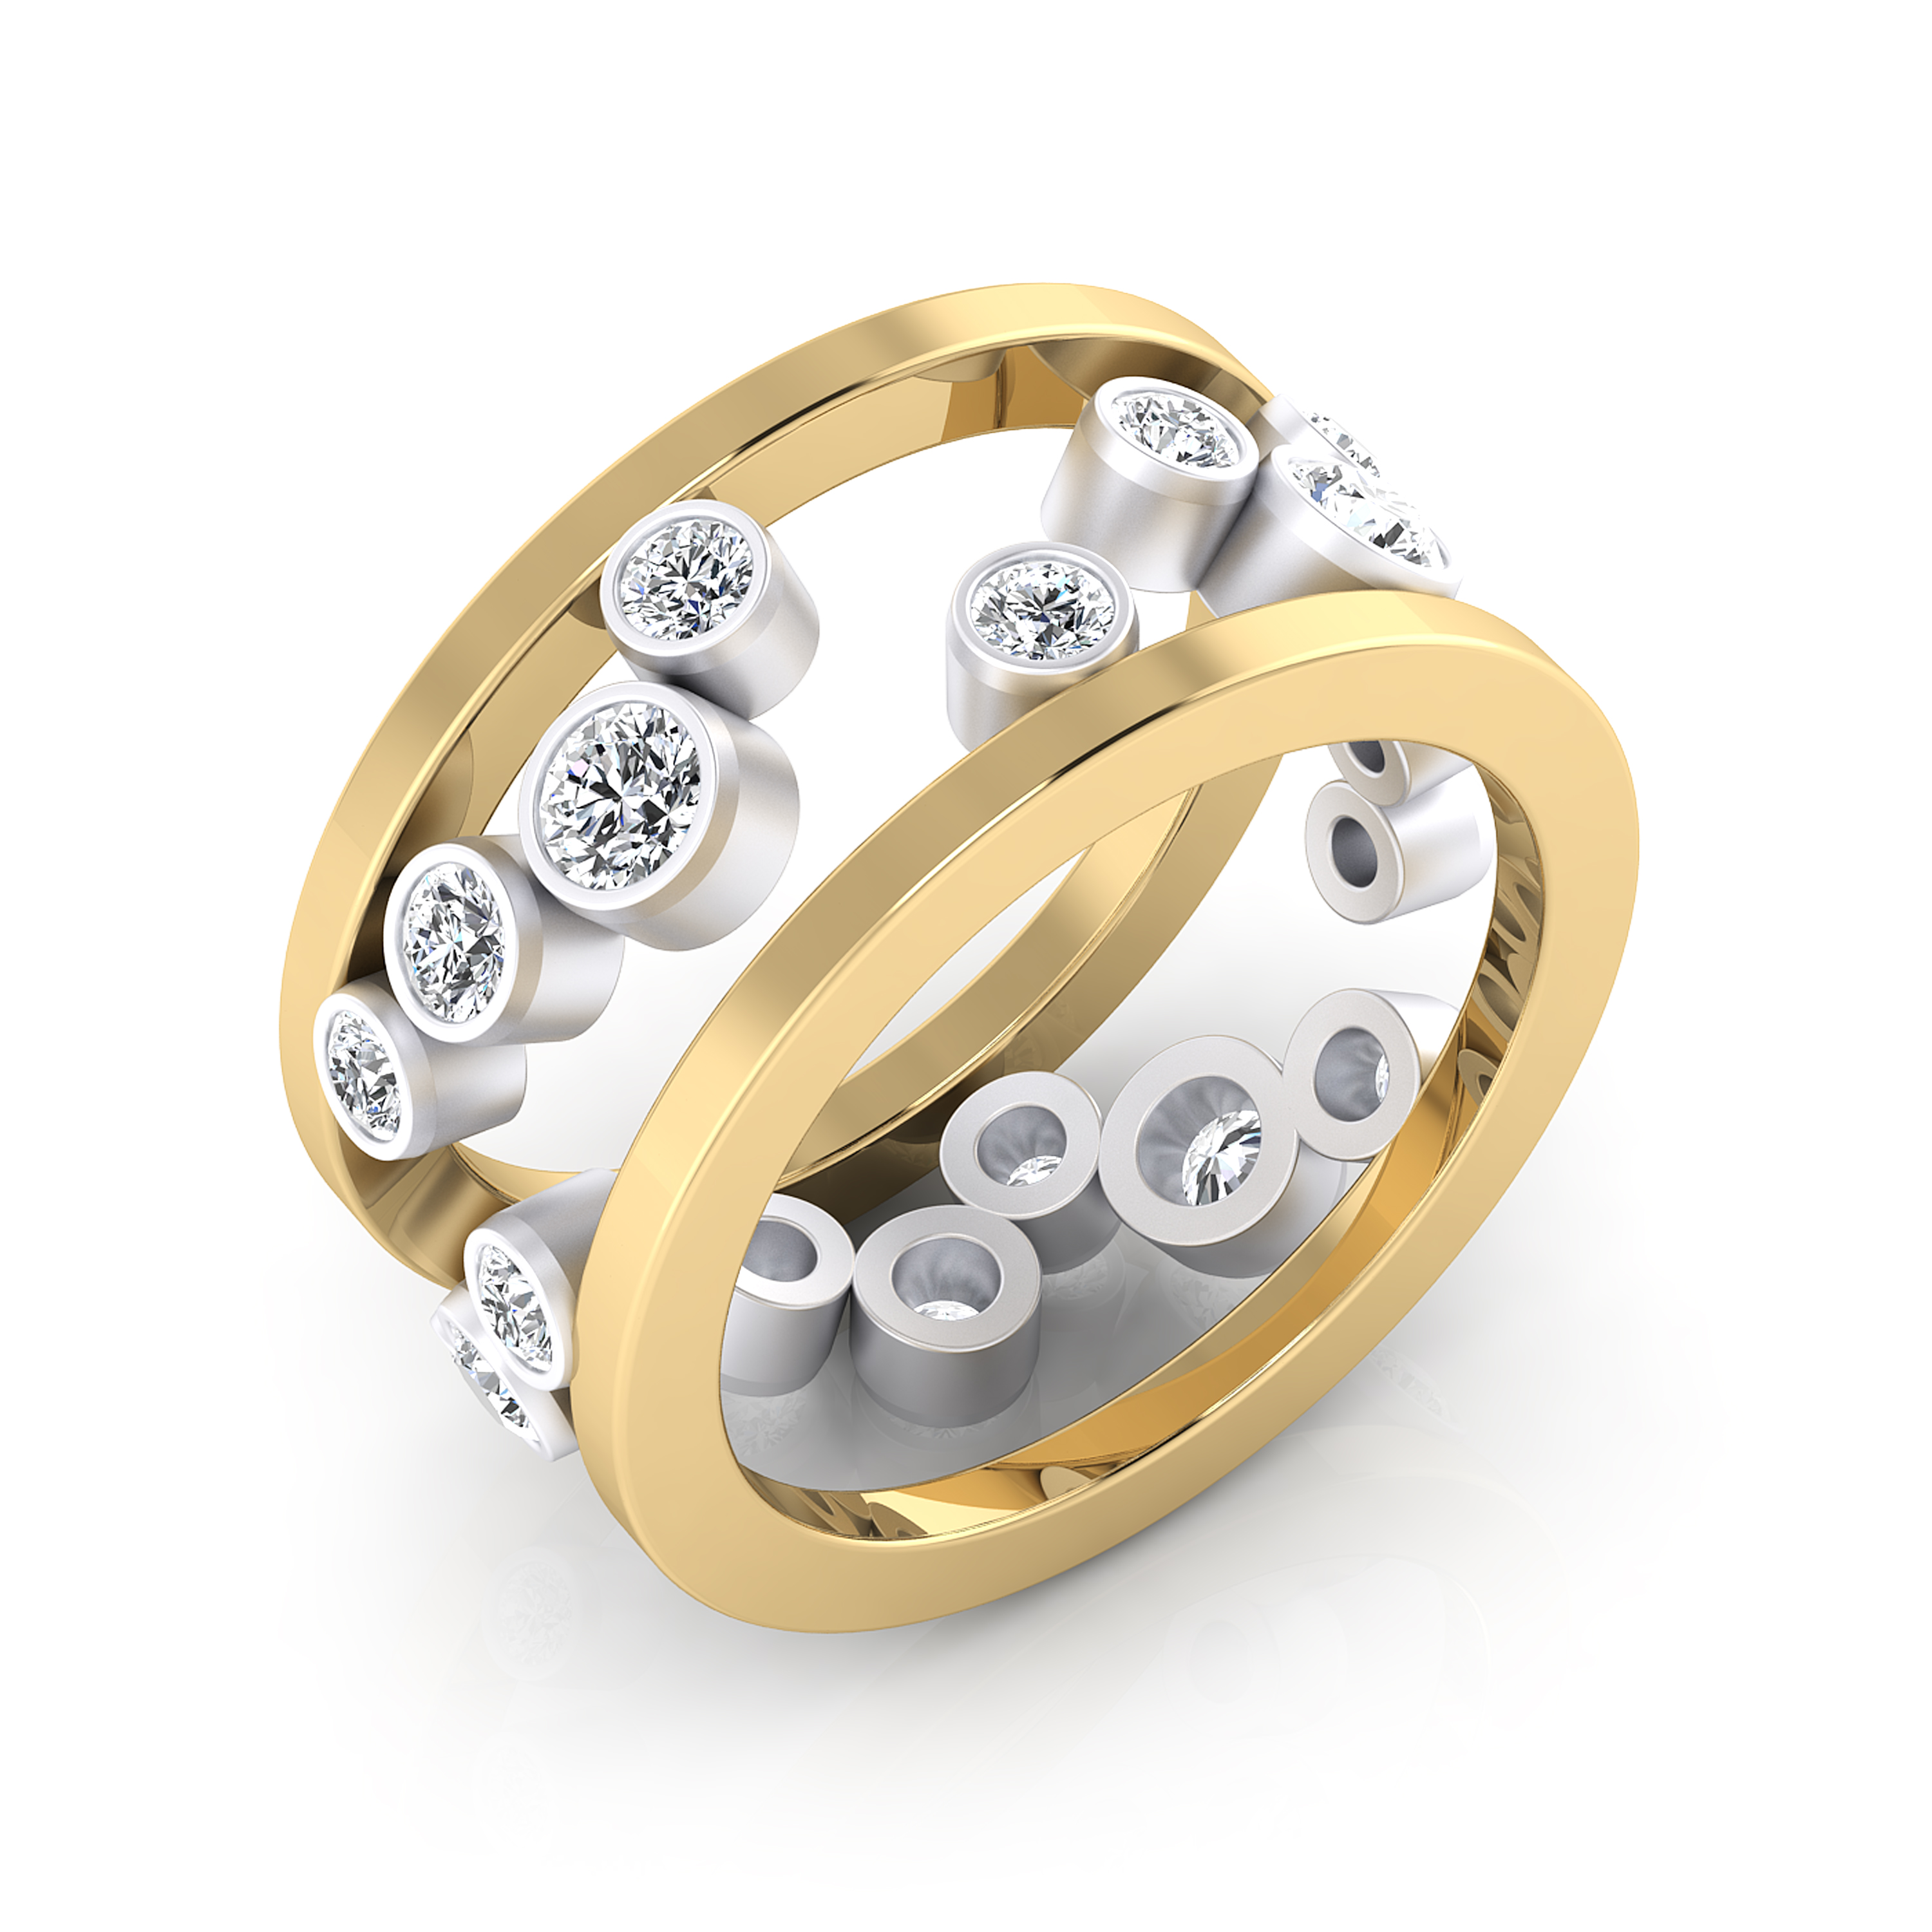 Ring made of 18K yellow and white gold, with 17 brilliant-cut diamonds.